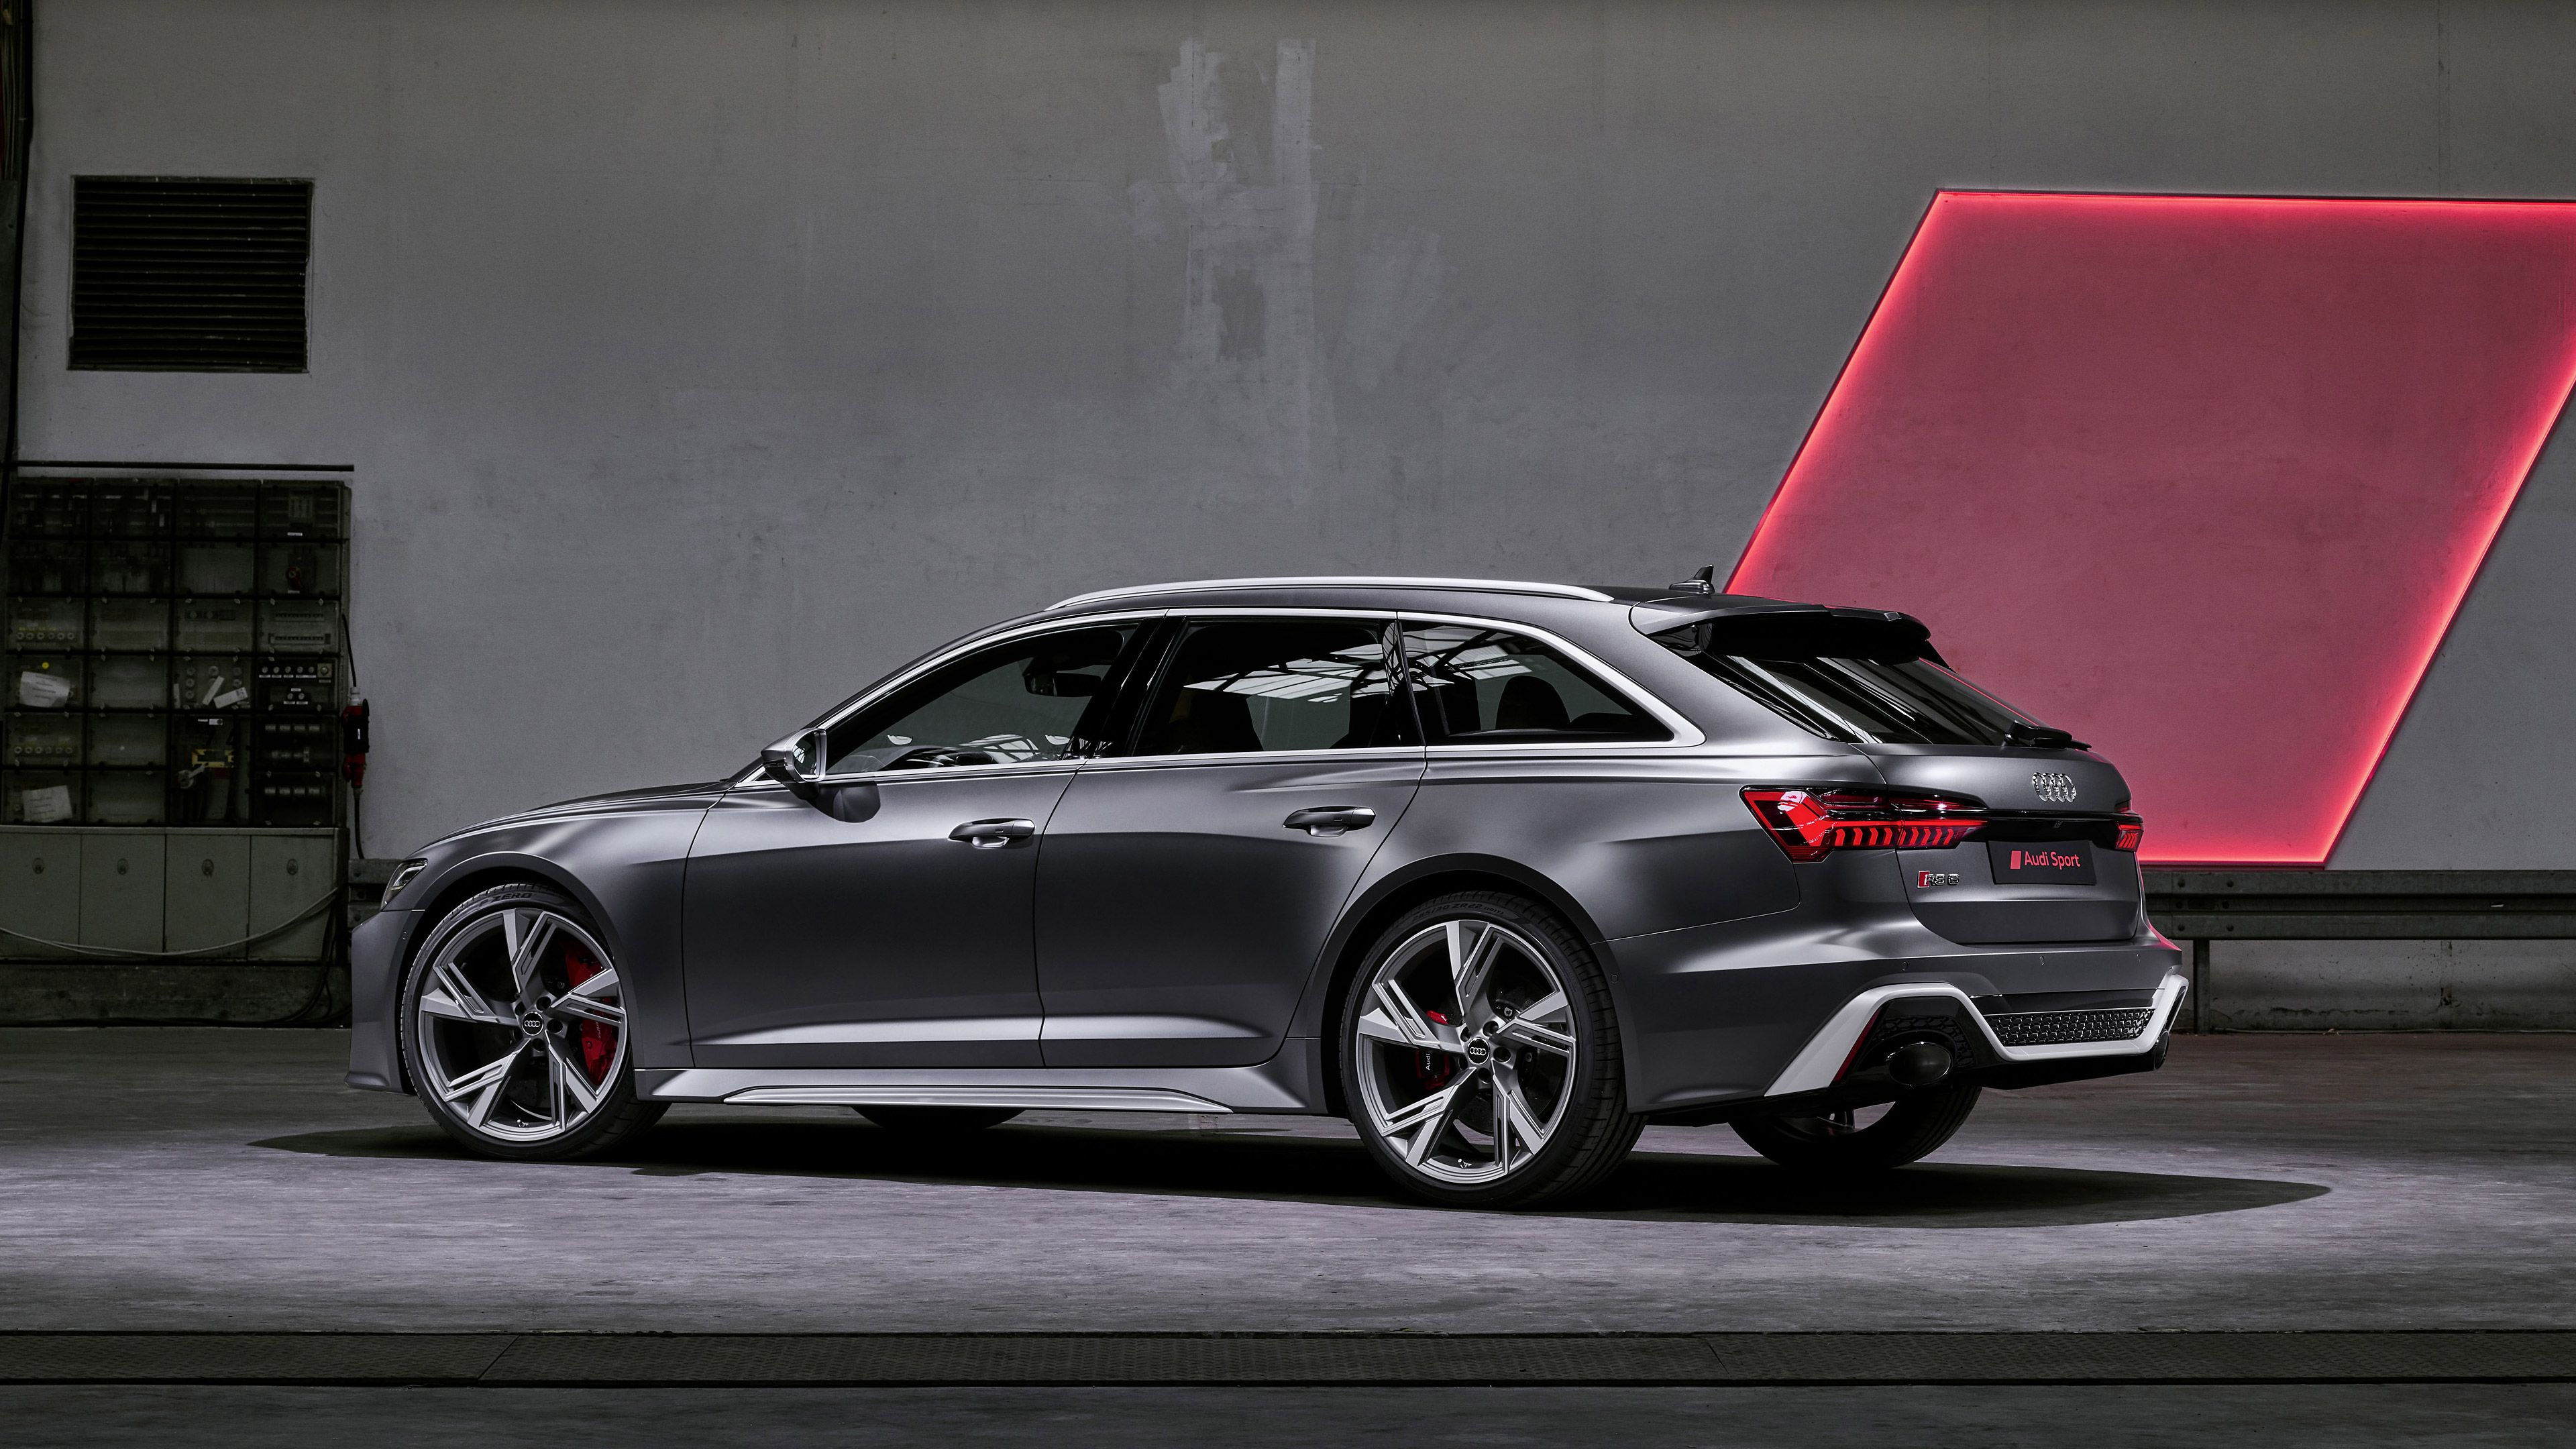 Best Of New Audi Rs6 Avant 2020 Commercial 4k And View